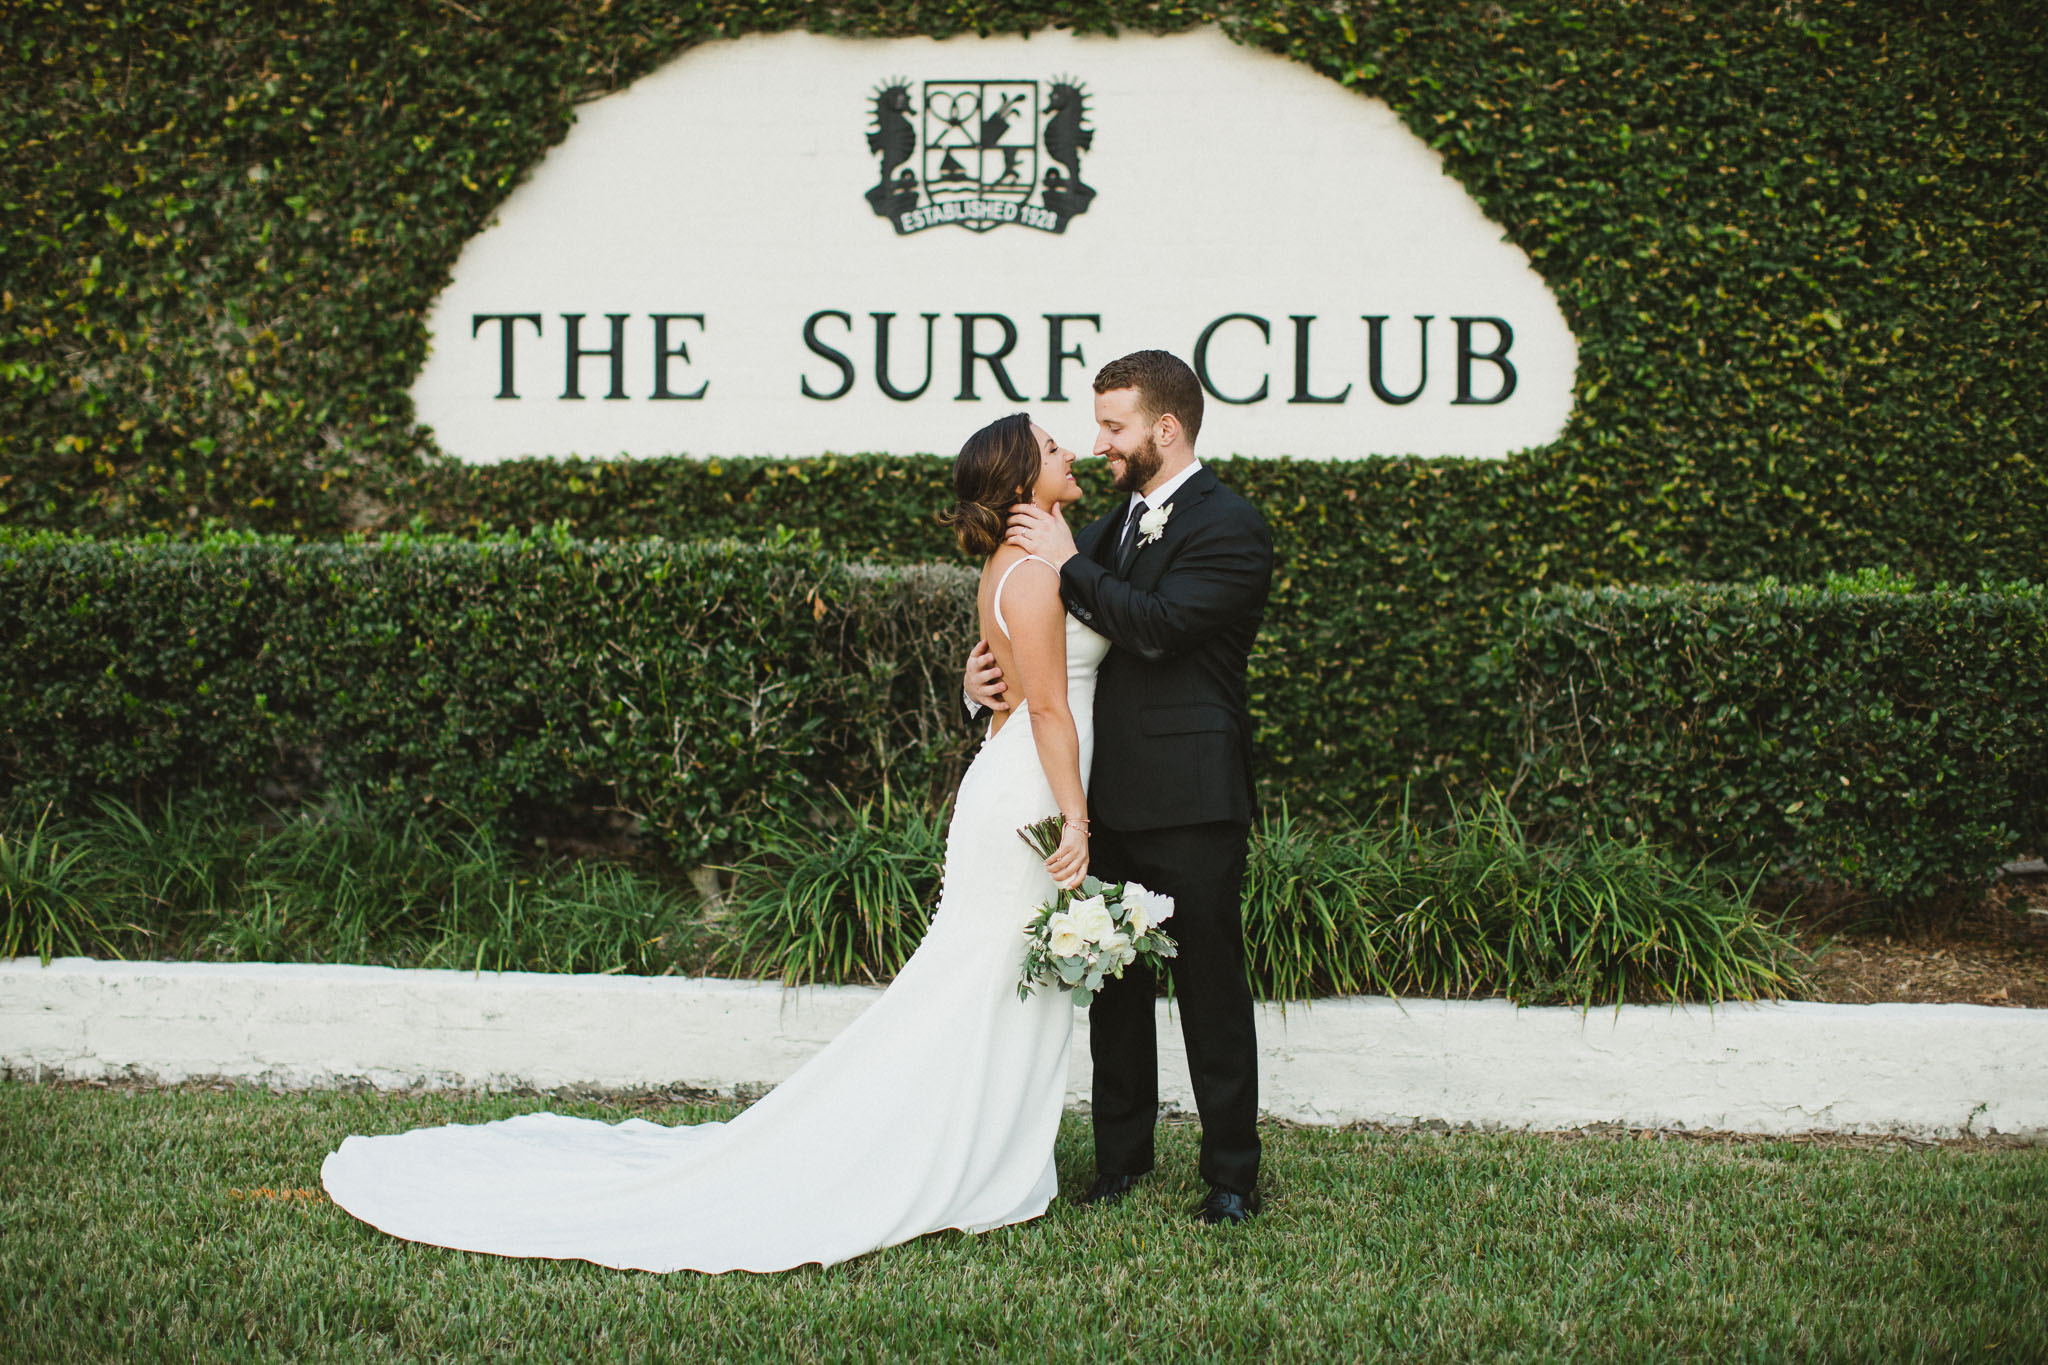 bride and groom looking at each other in front of surf club sign